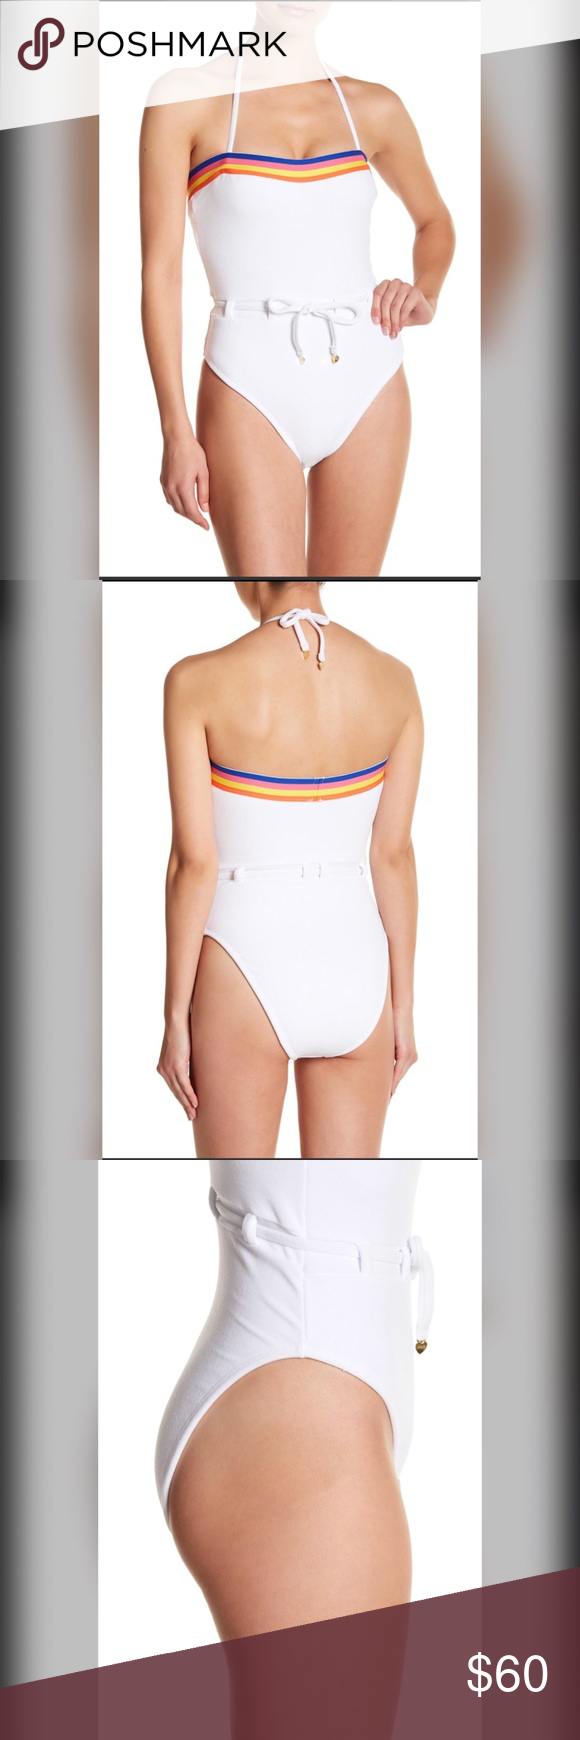 5da8126319 Juicy Couture Colorblock Microterry Swimsuit 🌈 This has all the best  vibes. Grab your roller